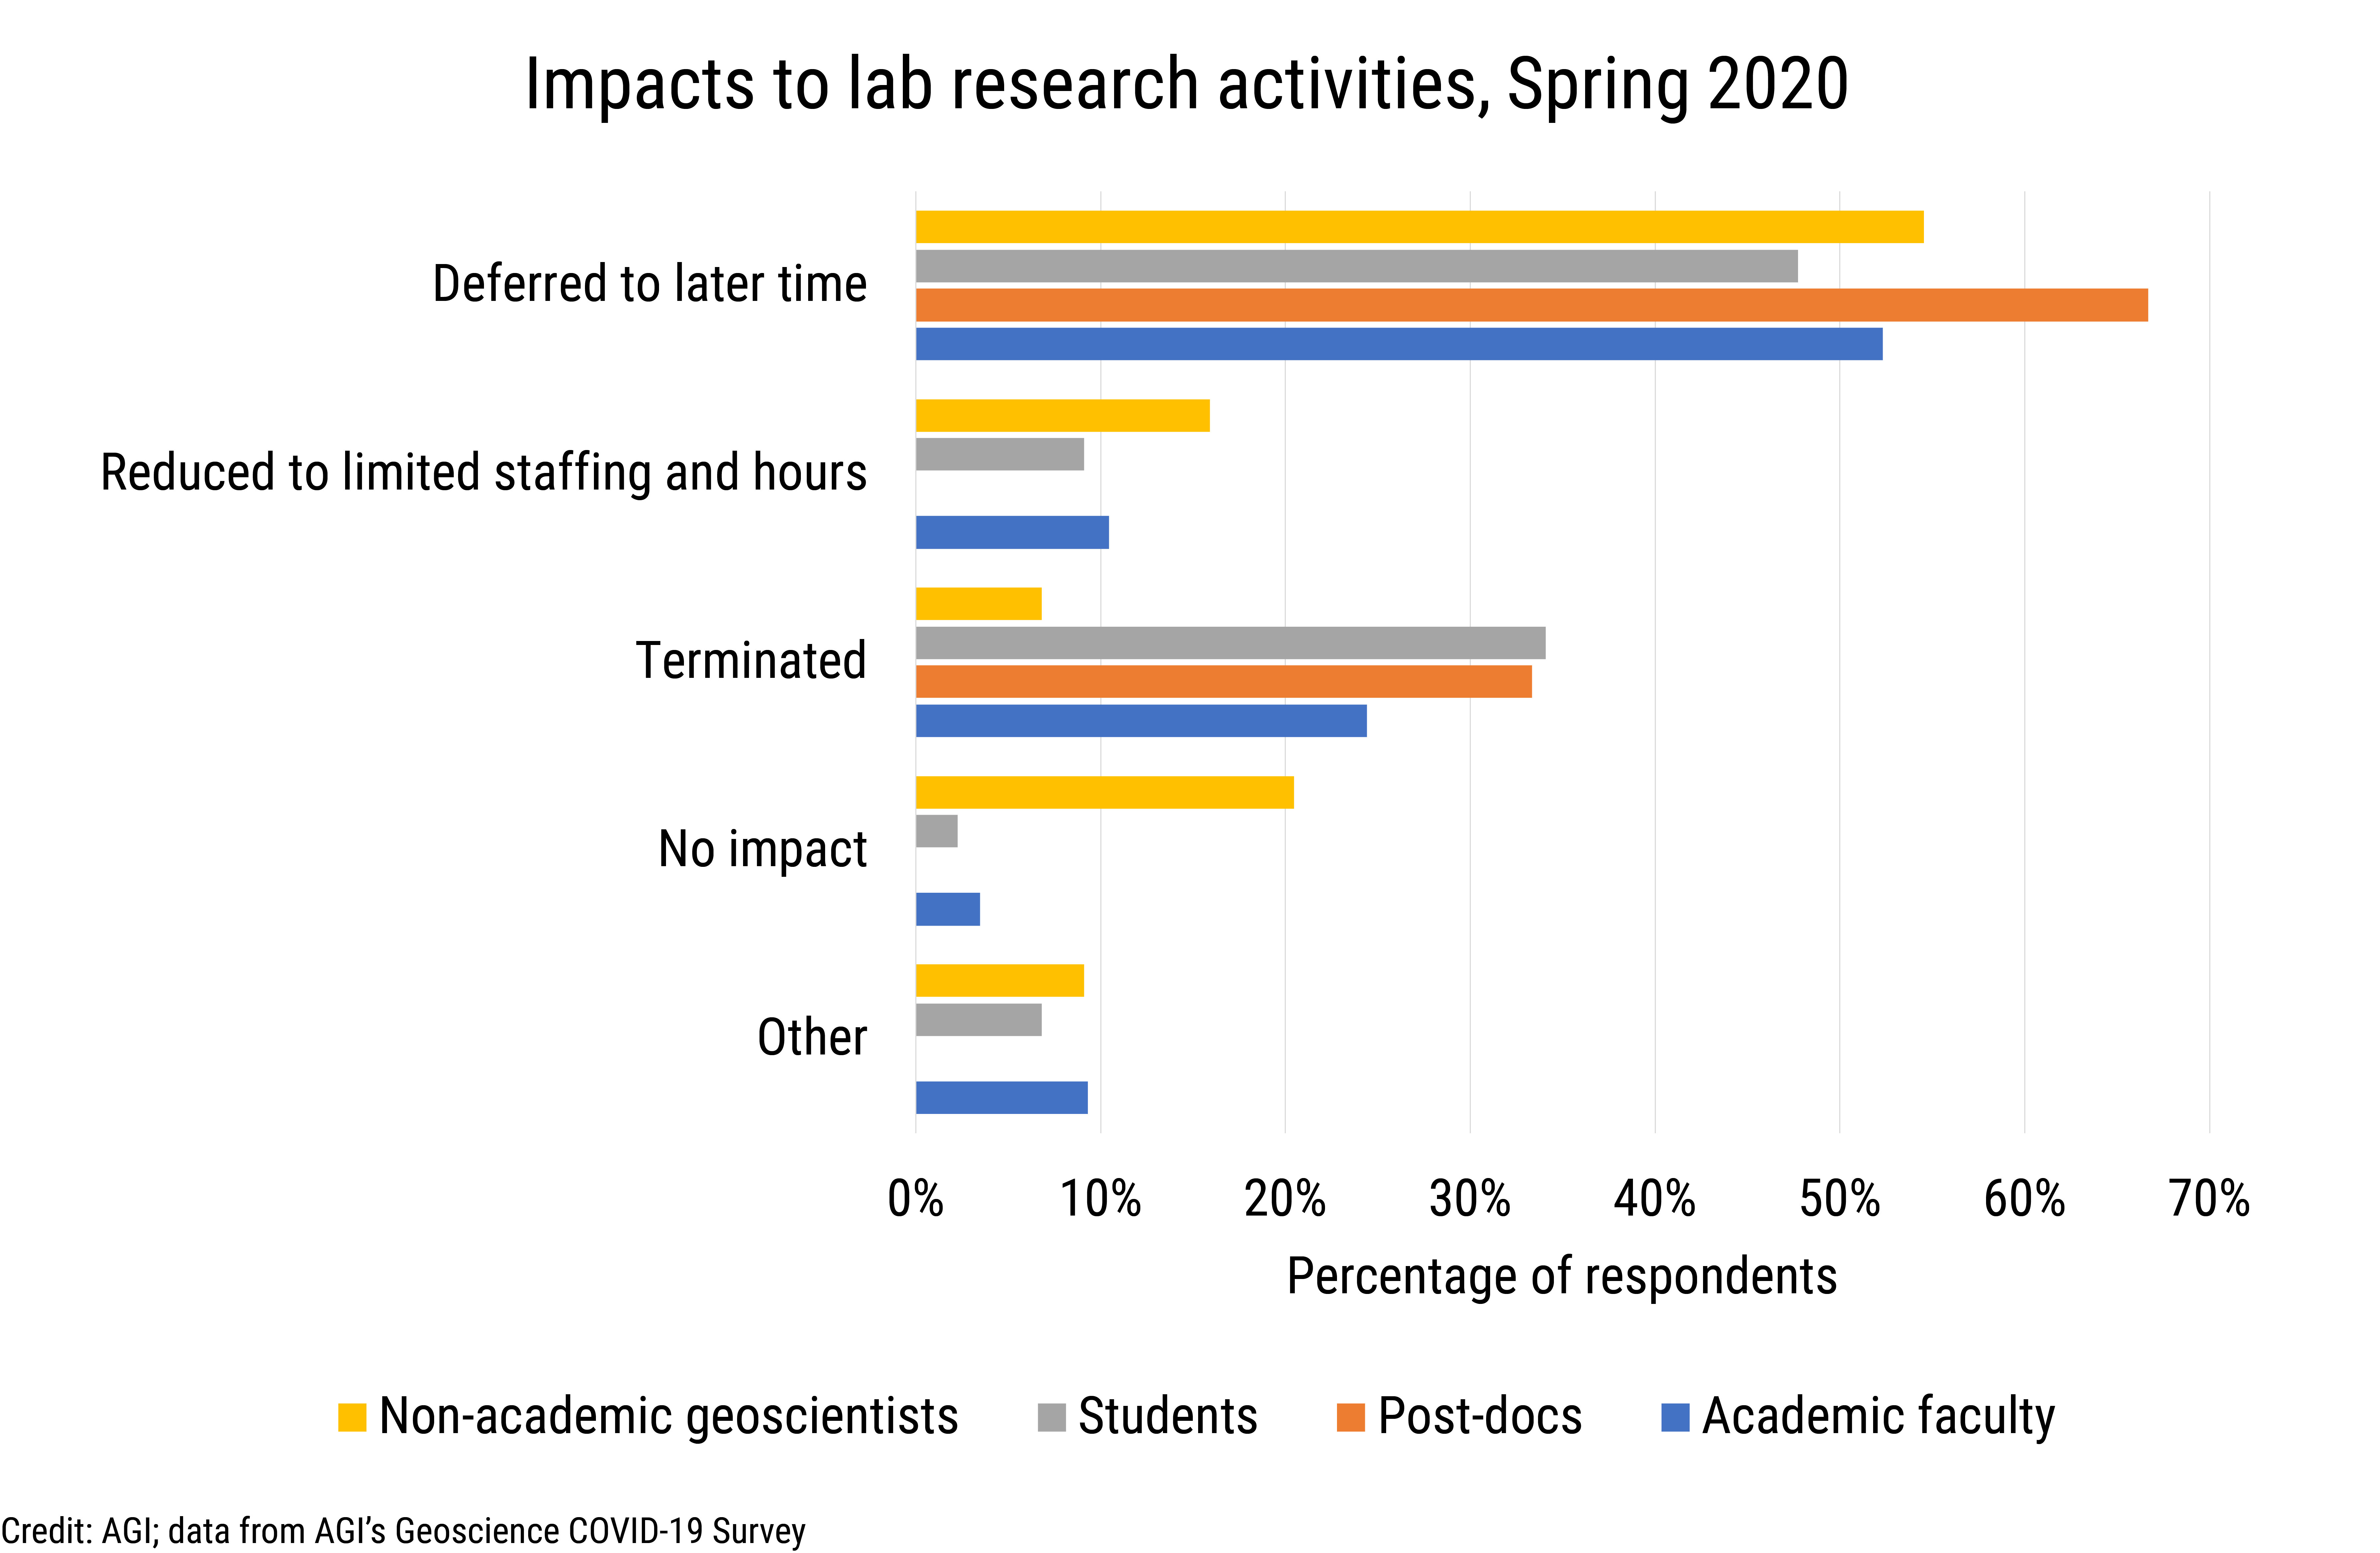 Data Brief 2020-009 chart 03: Impacts to lab research activities, Spring 2020 (credit: AGI; data derived from AGI's Geoscience COVID-19 Survey)